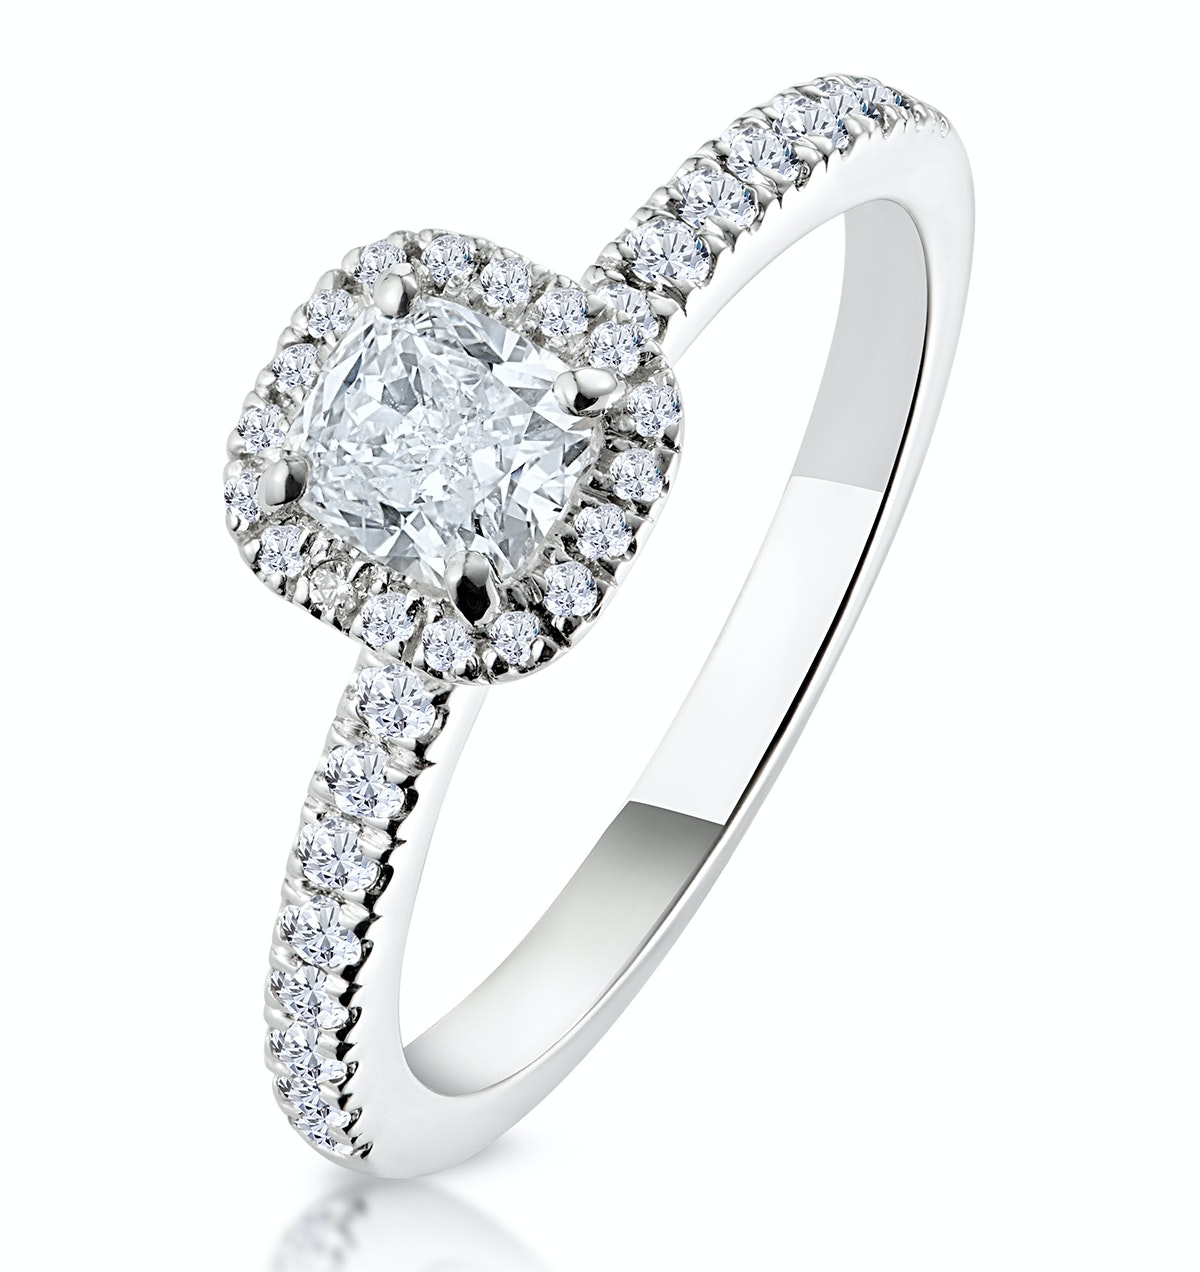 Beatrice GIA Diamond Halo Engagement Ring 18K White Gold 1ct G/SI1